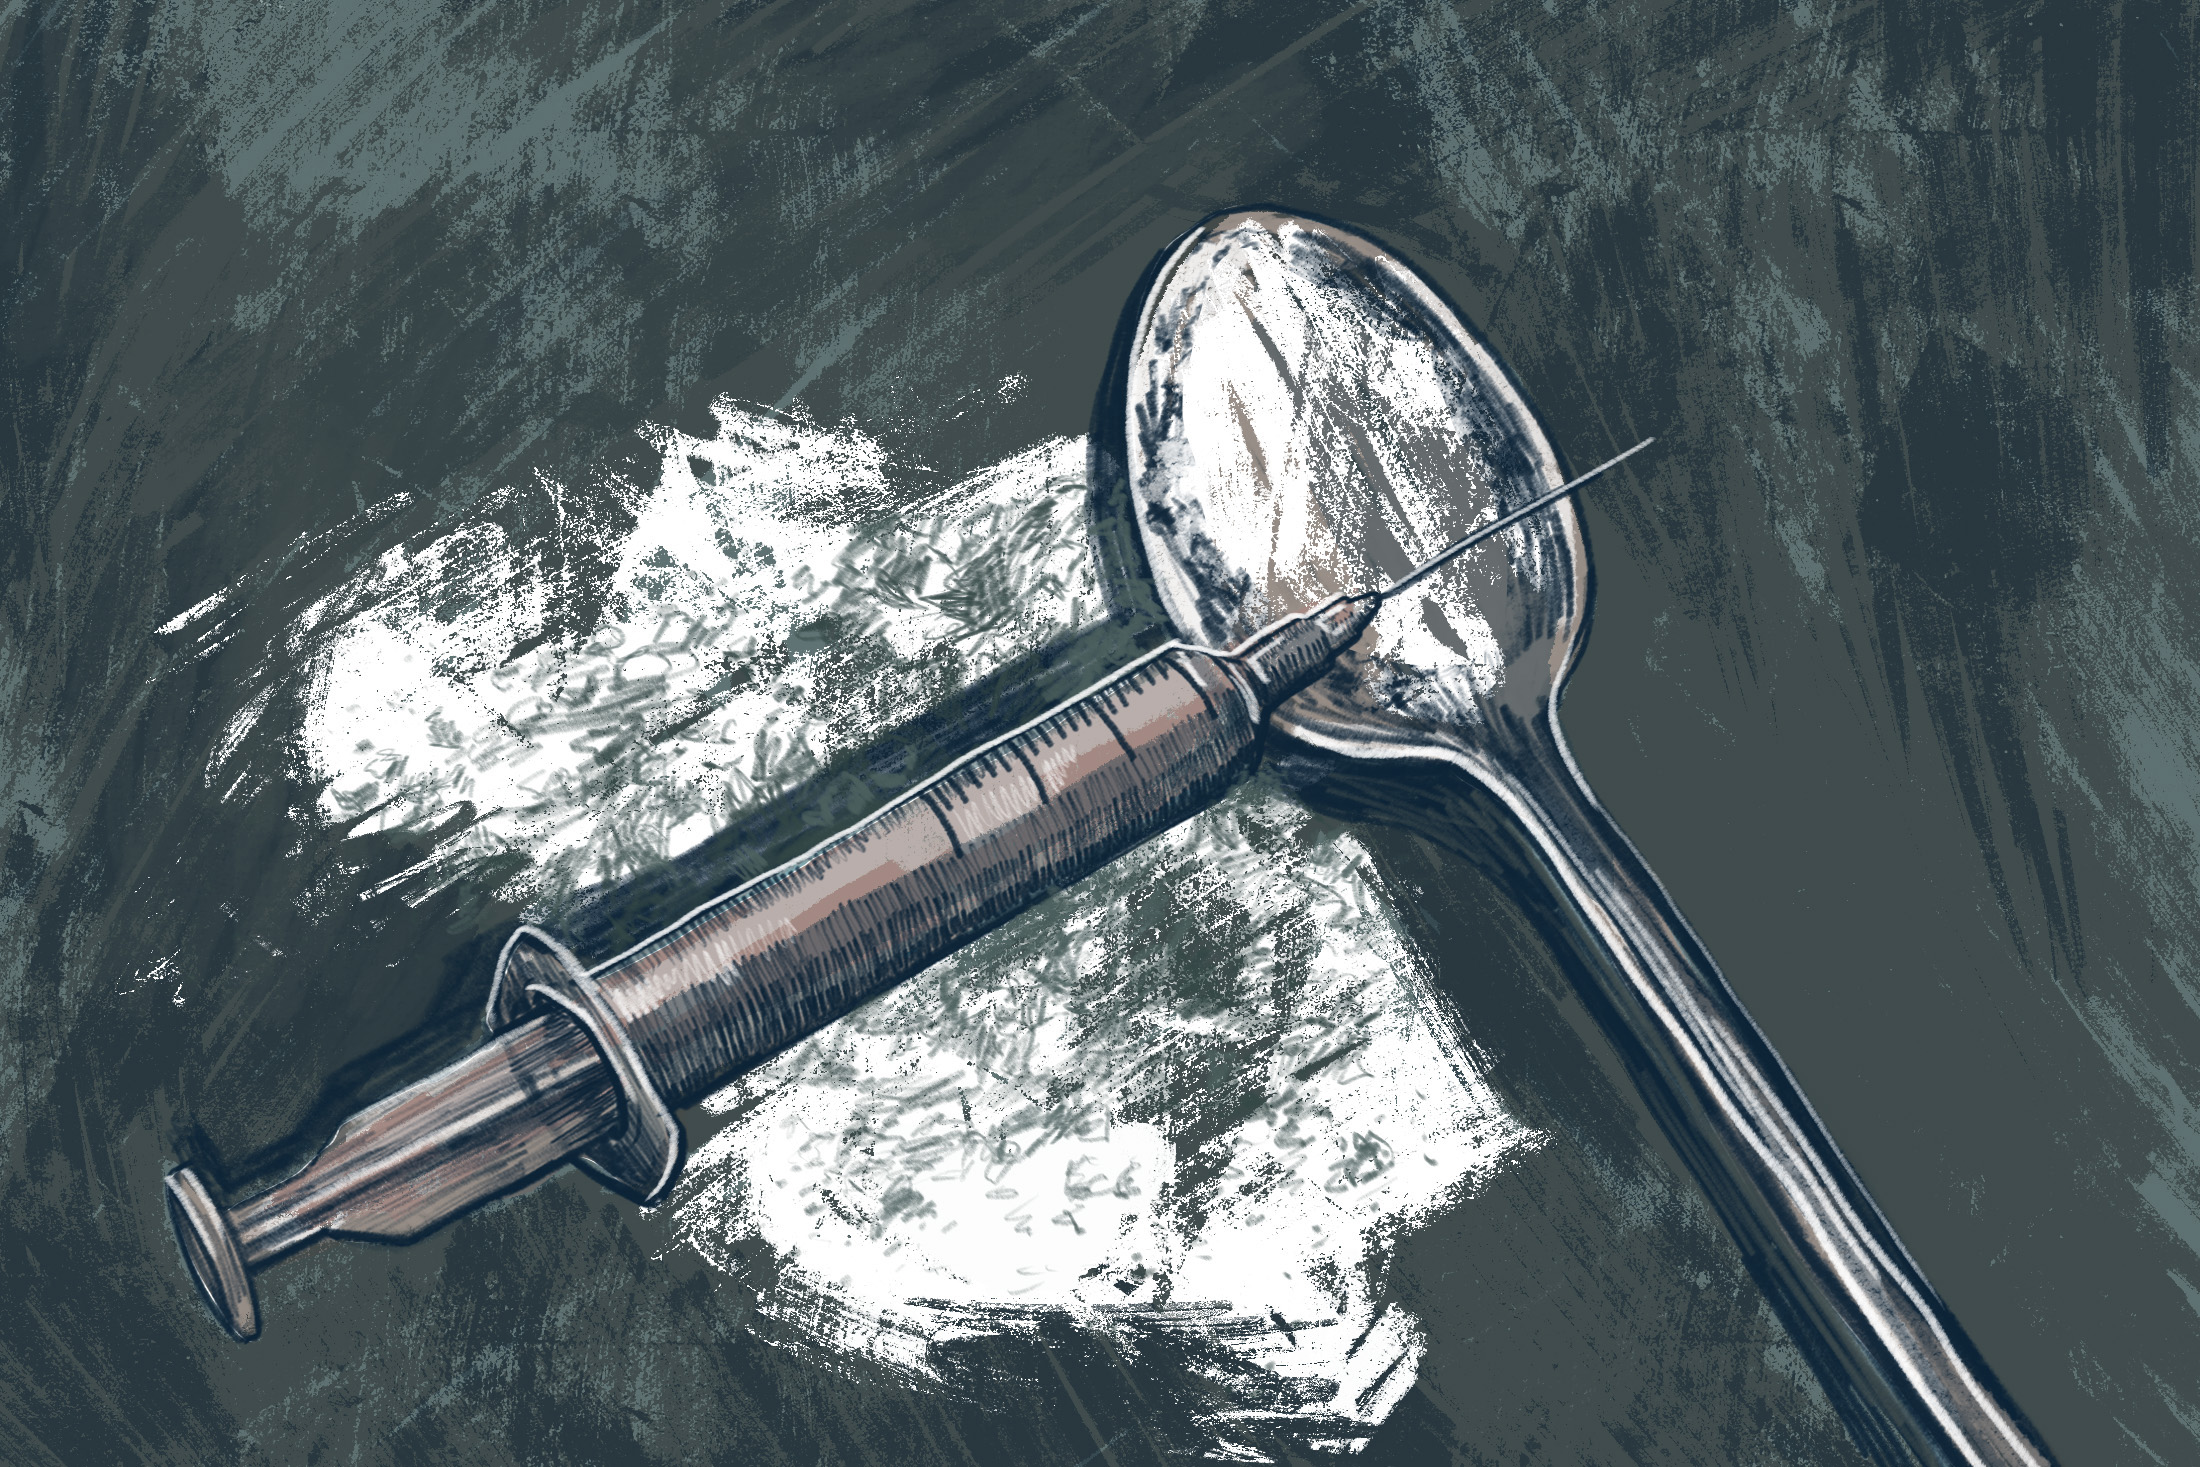 Illustration of heroin needle and spoon (Illustration by Natalie Kenney/GroundTruth)